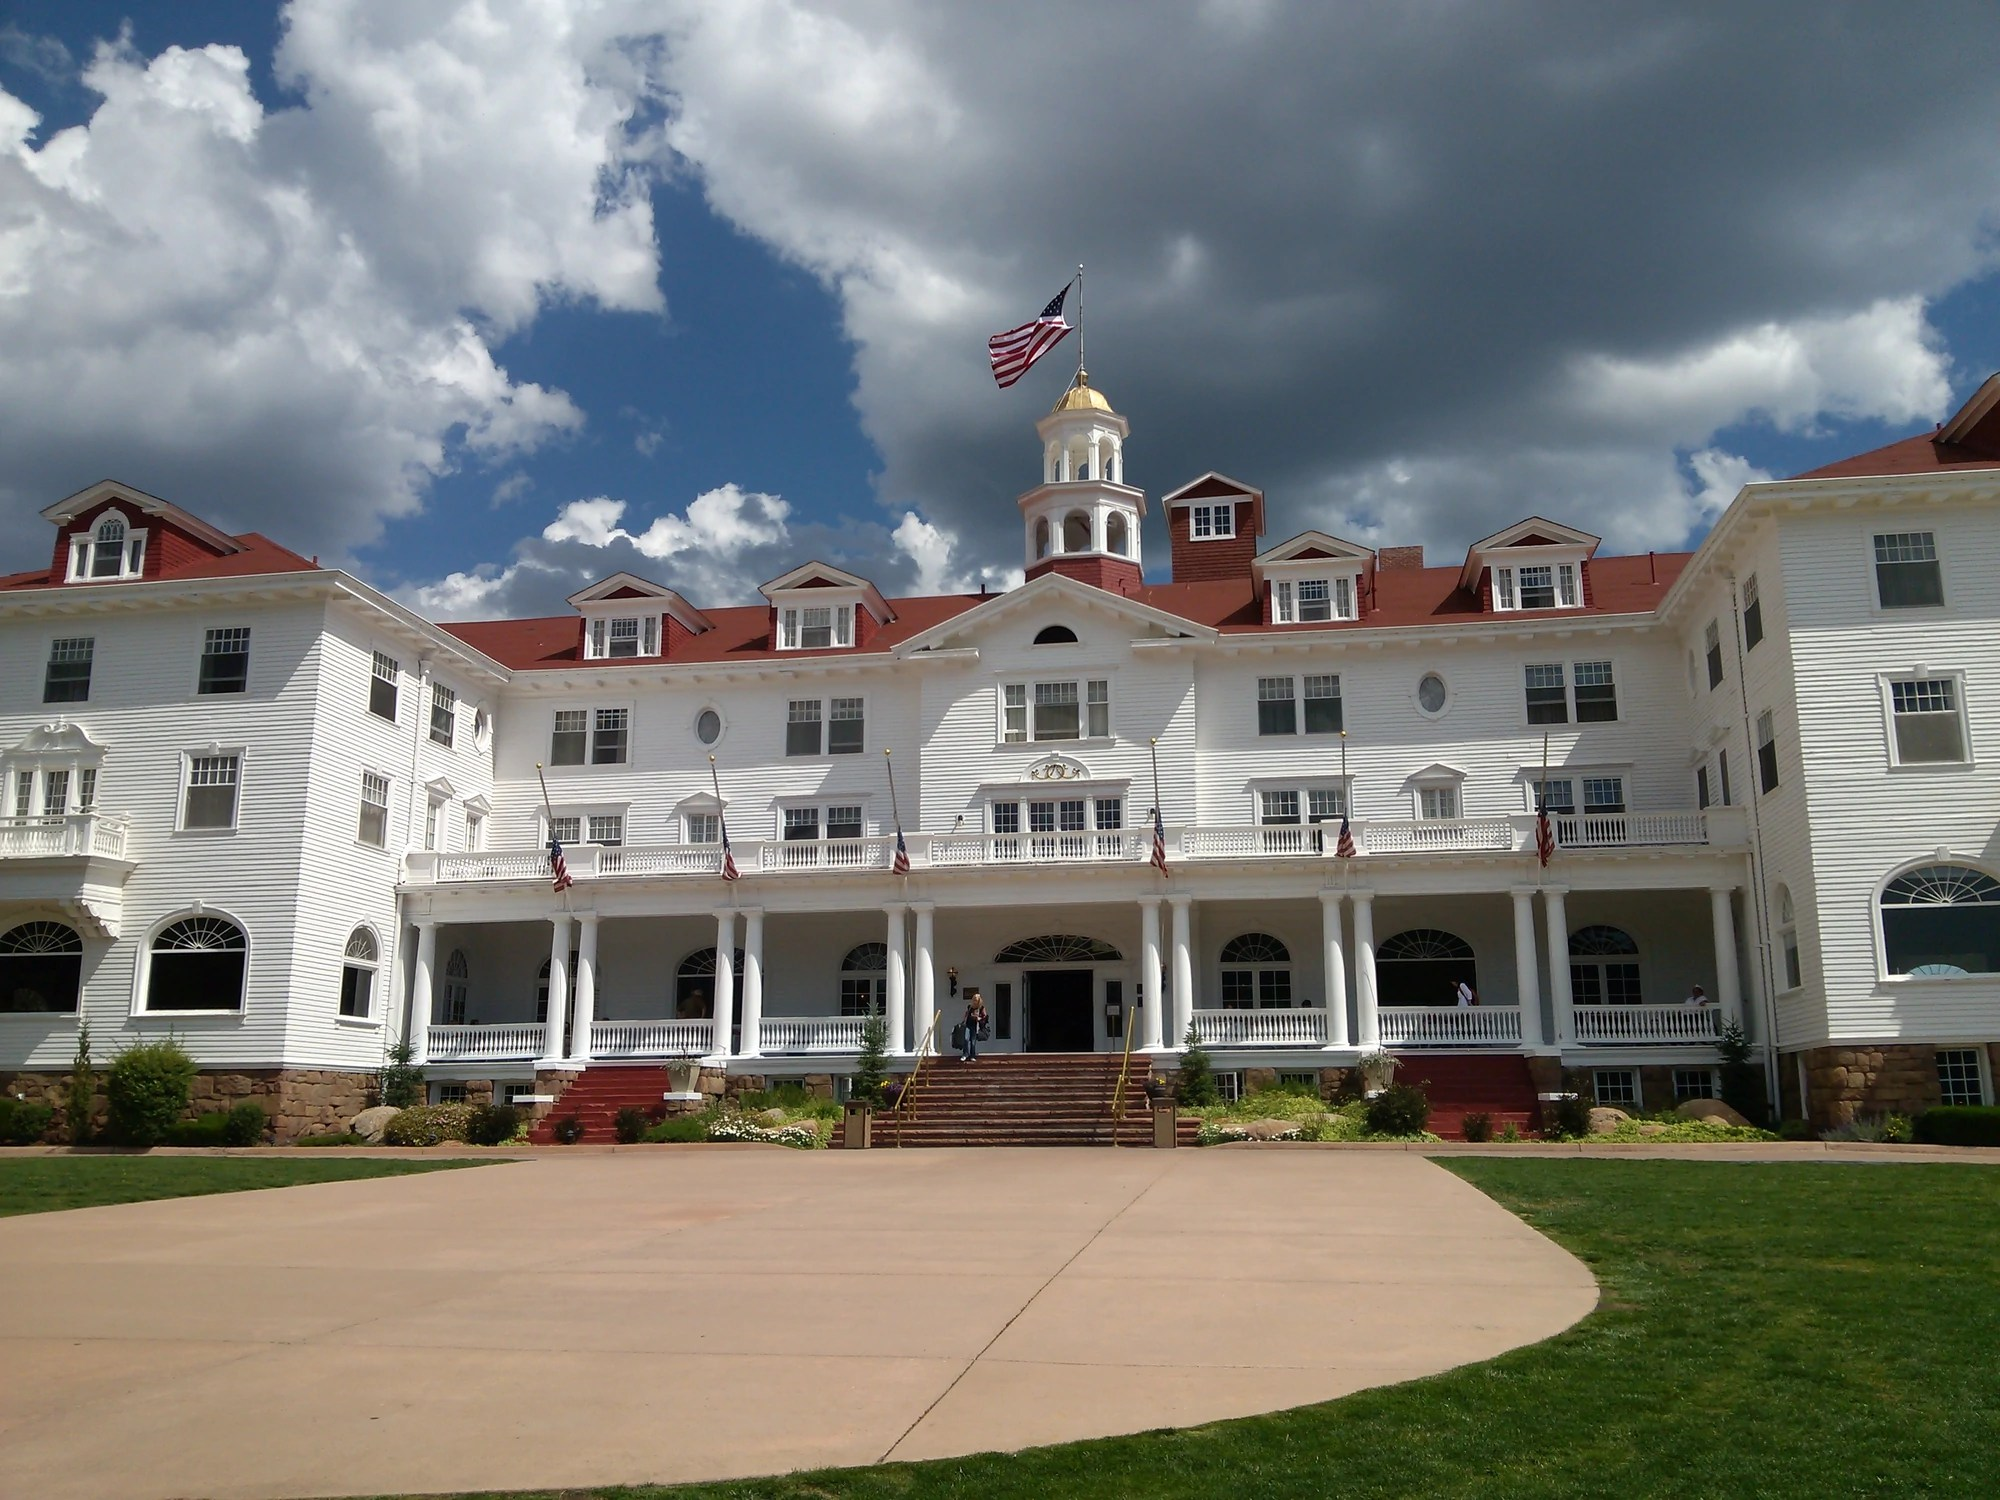 Overlook Hotel Stephen King Wiki Fandom Powered Wikia